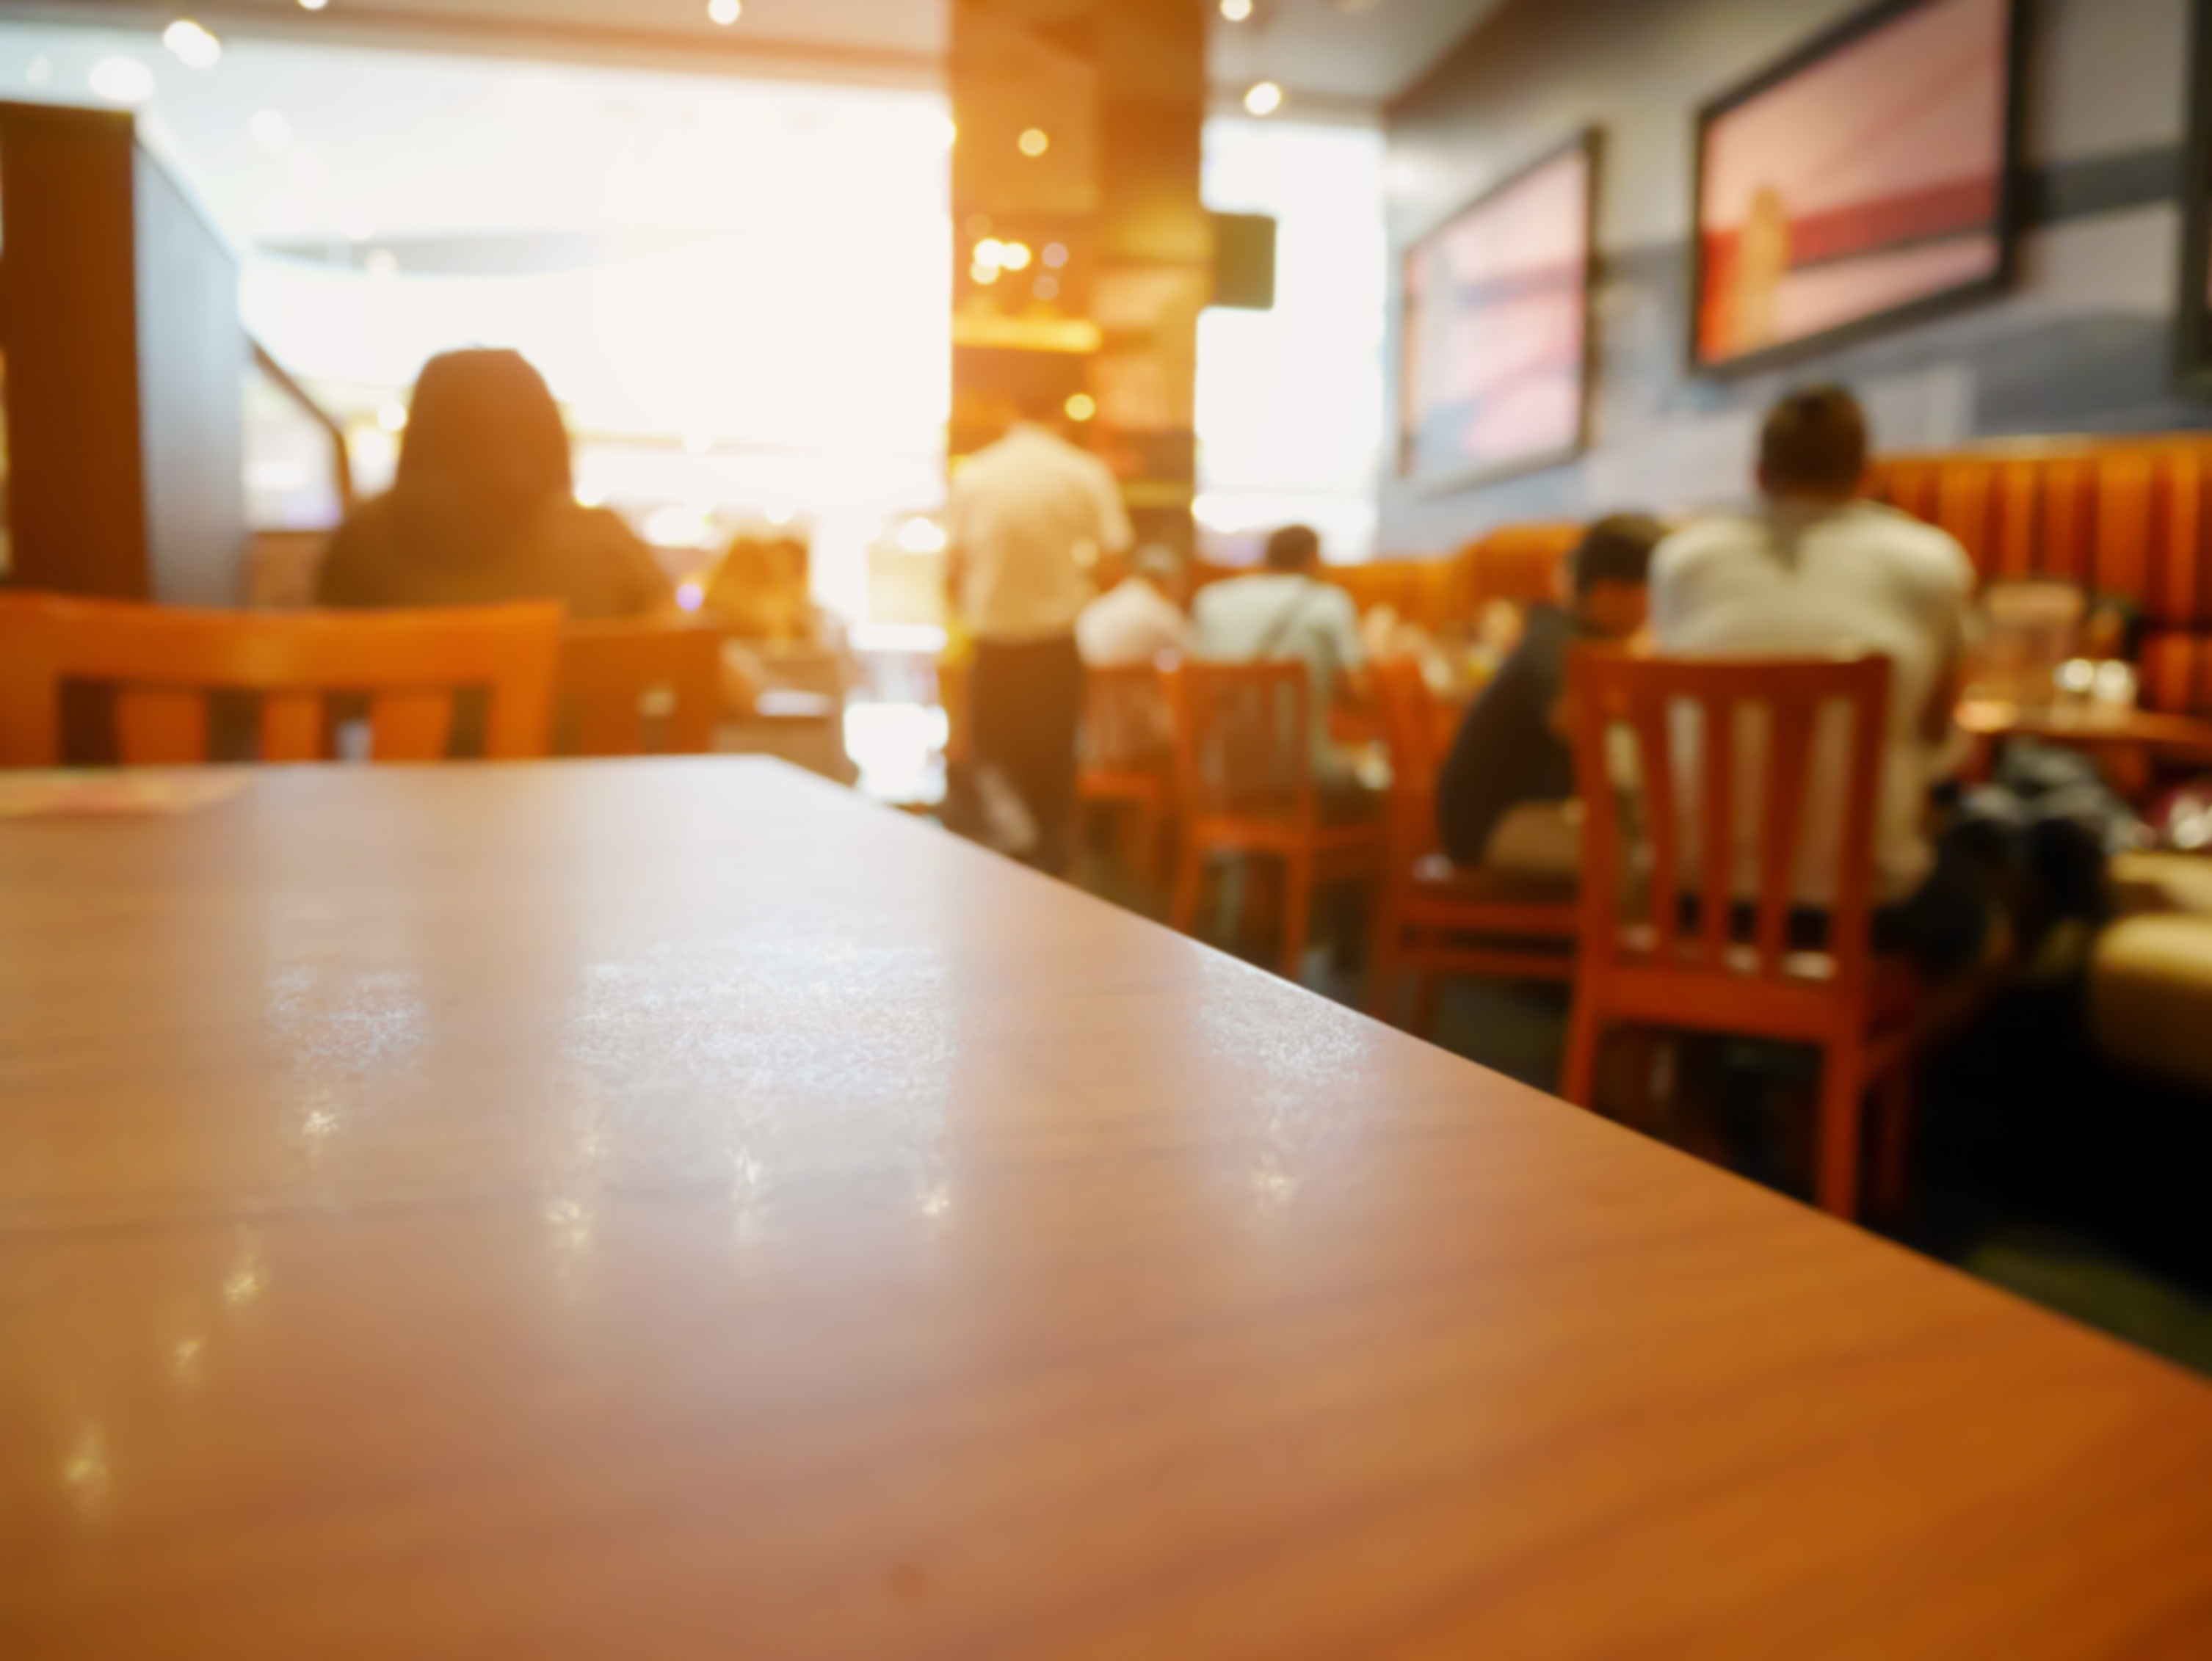 How IT Outsourcing Can Relieve Today's Restaurant Industry Struggles